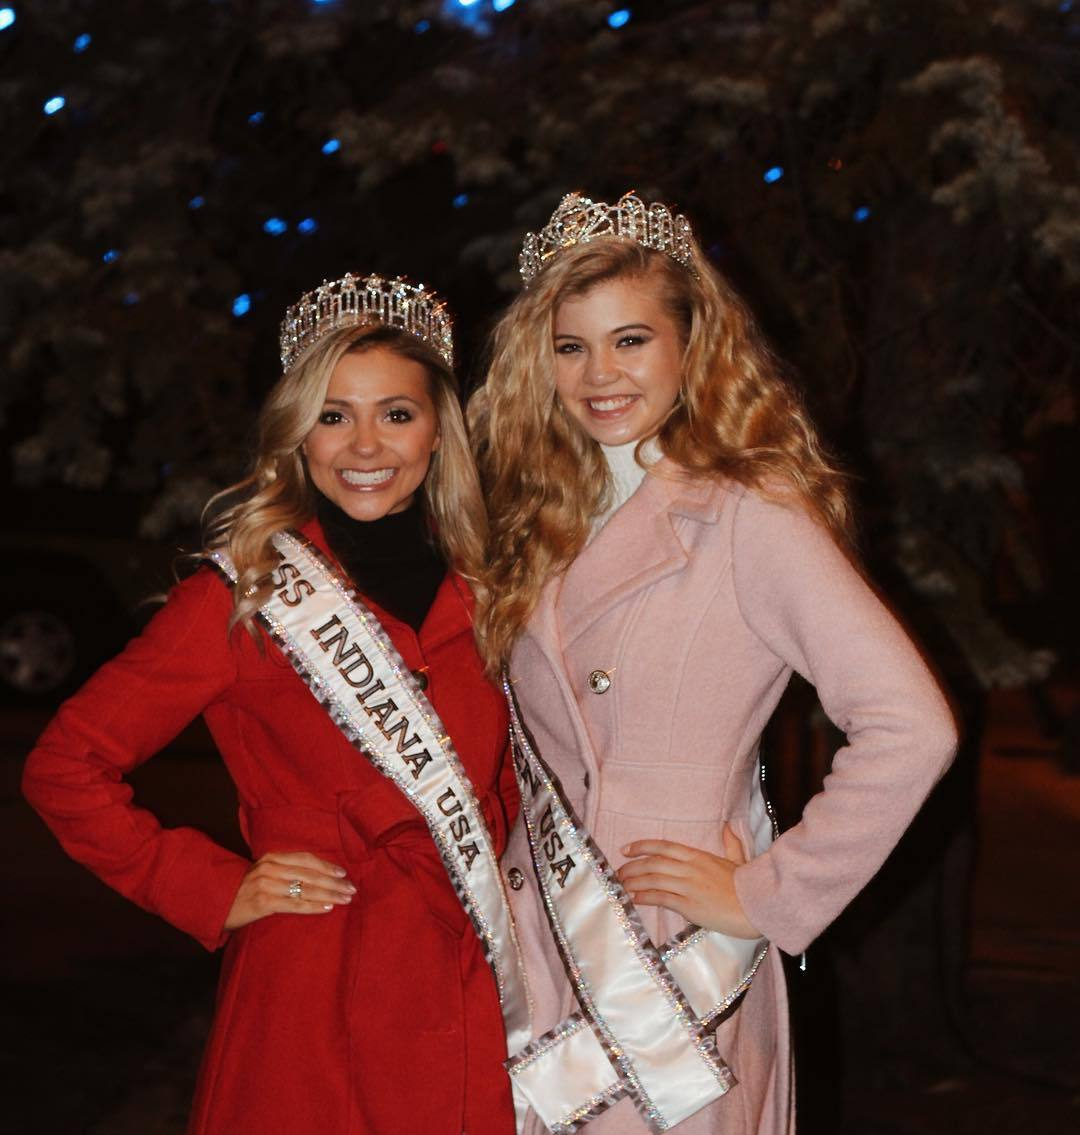 tate fritchley, miss indiana 2019. 44773054_1129746980529513_6894397965057245886_n